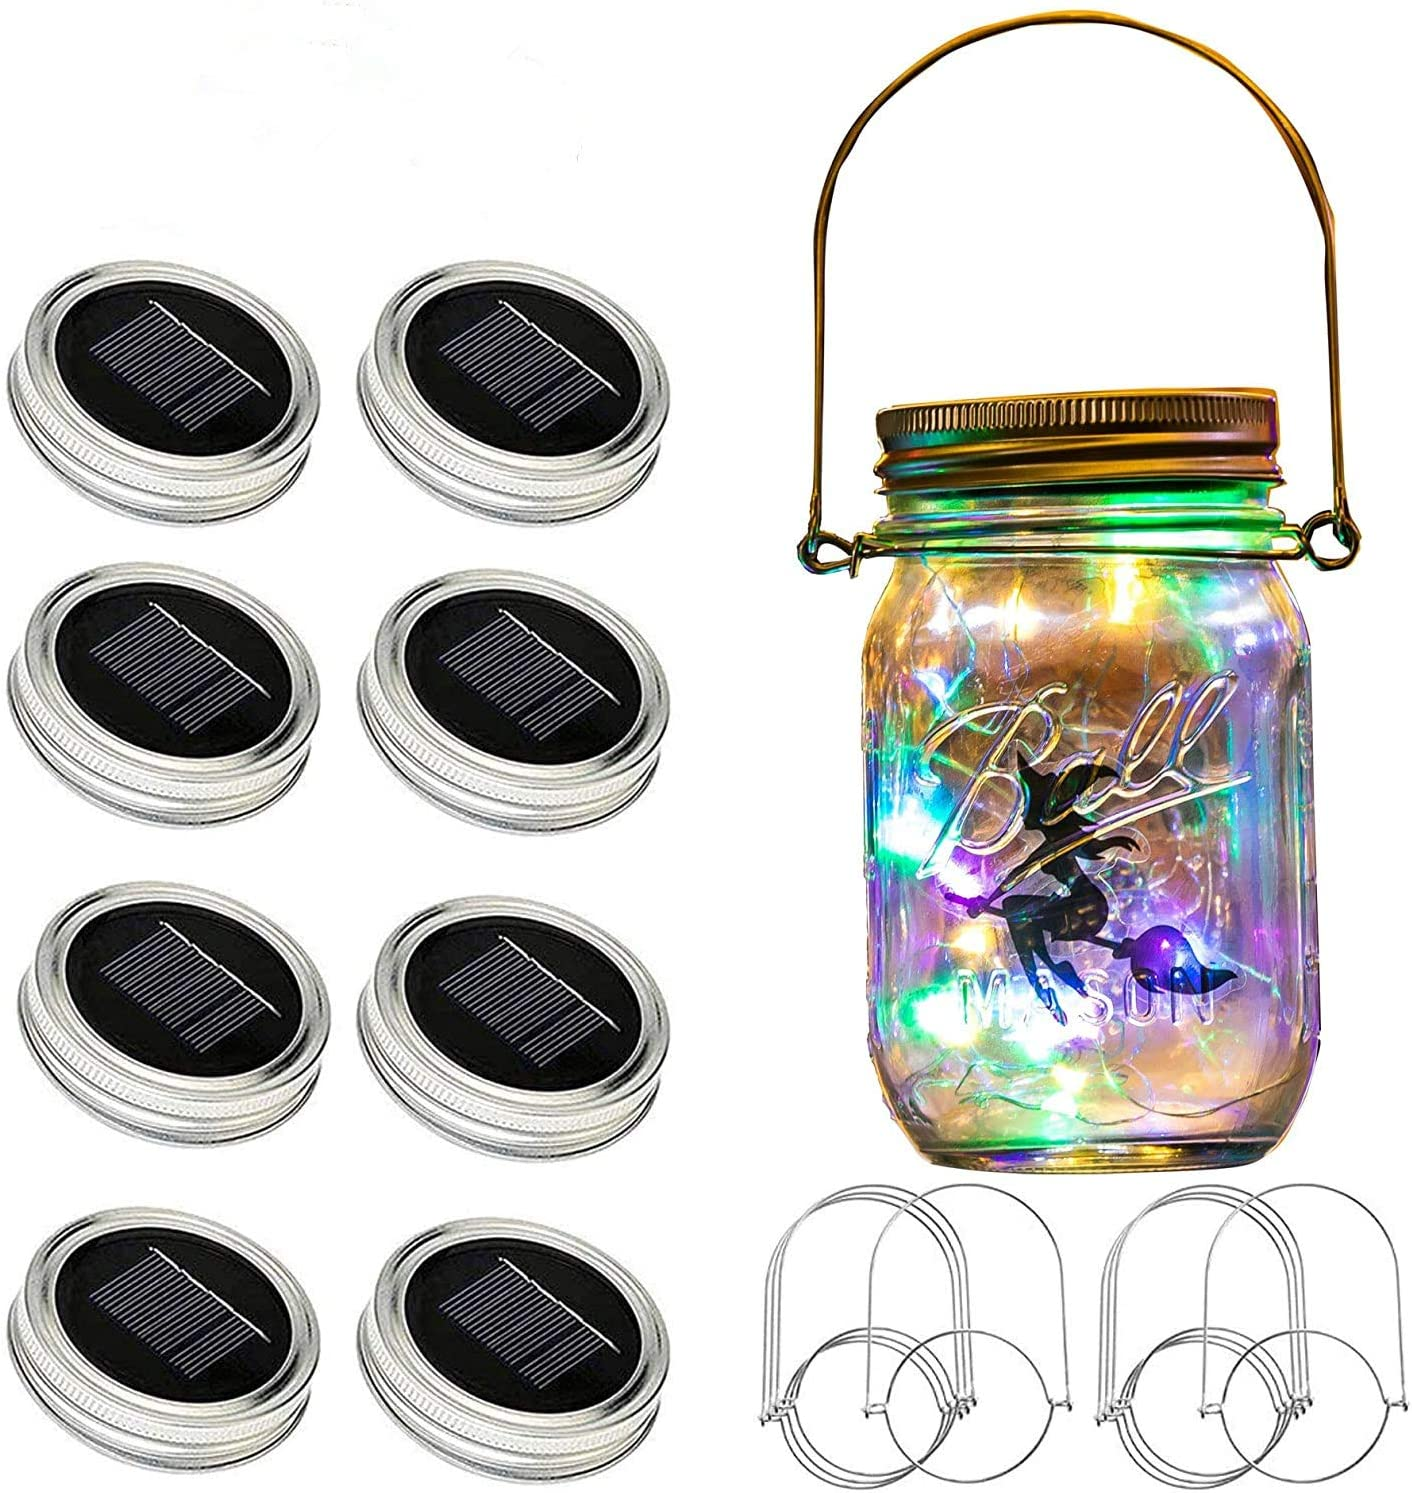 Bethlehem Lighting Updated Solar Mason lid Light, 8 Pack 30Led Waterproof Fairy Firefly, Including 8 Hangers and 6 pcs PVC (Jars Not Included), Best for Courtyard Garden,Wedding(Multi Color)